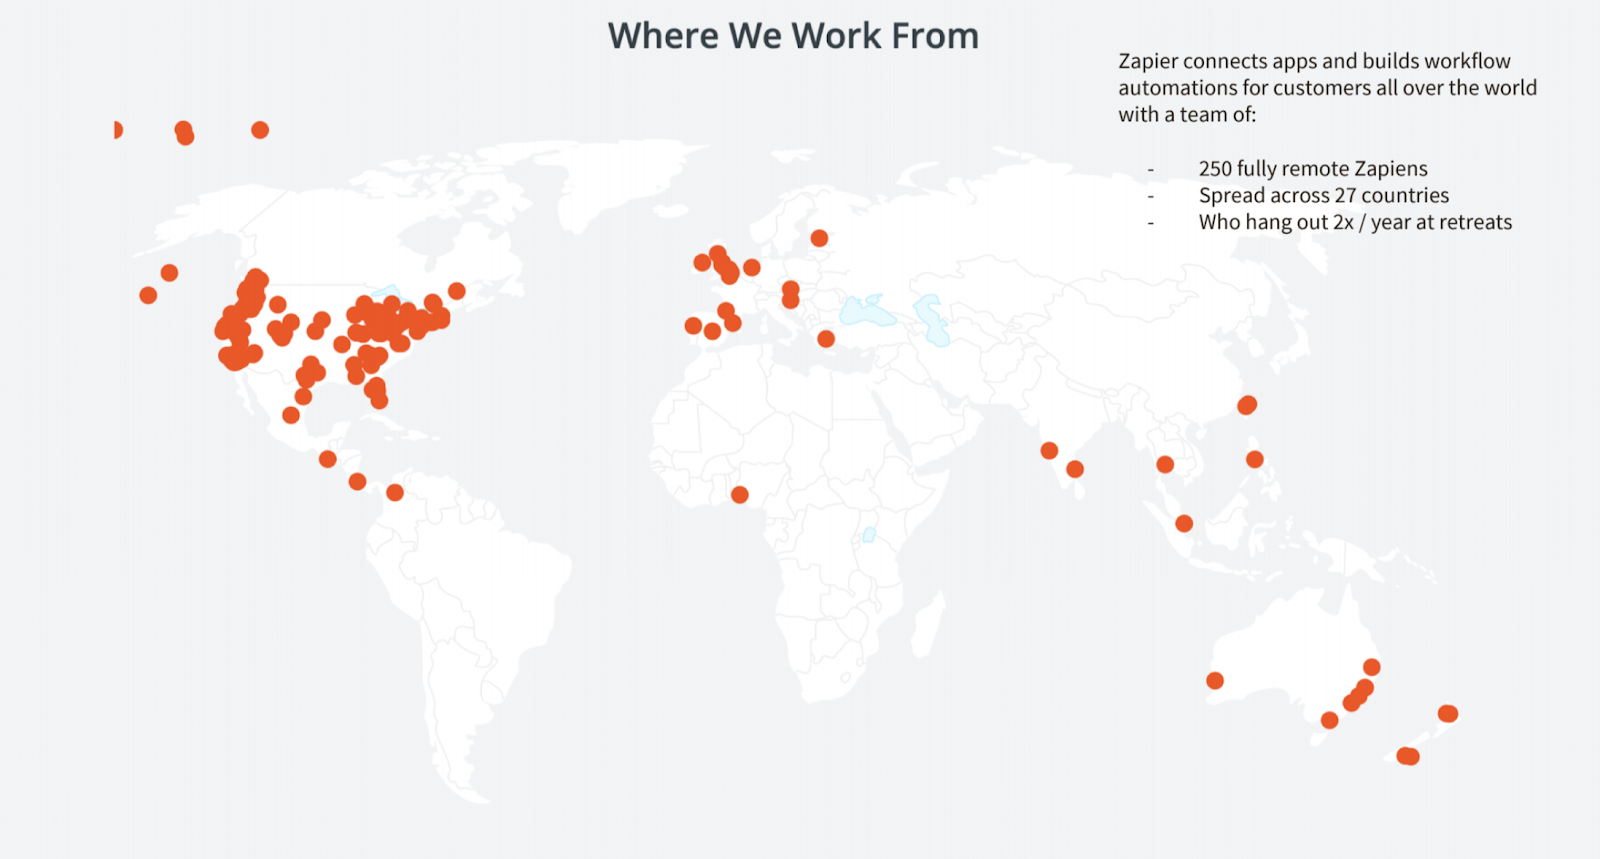 Graphic depicting where workers at Zapier work from.